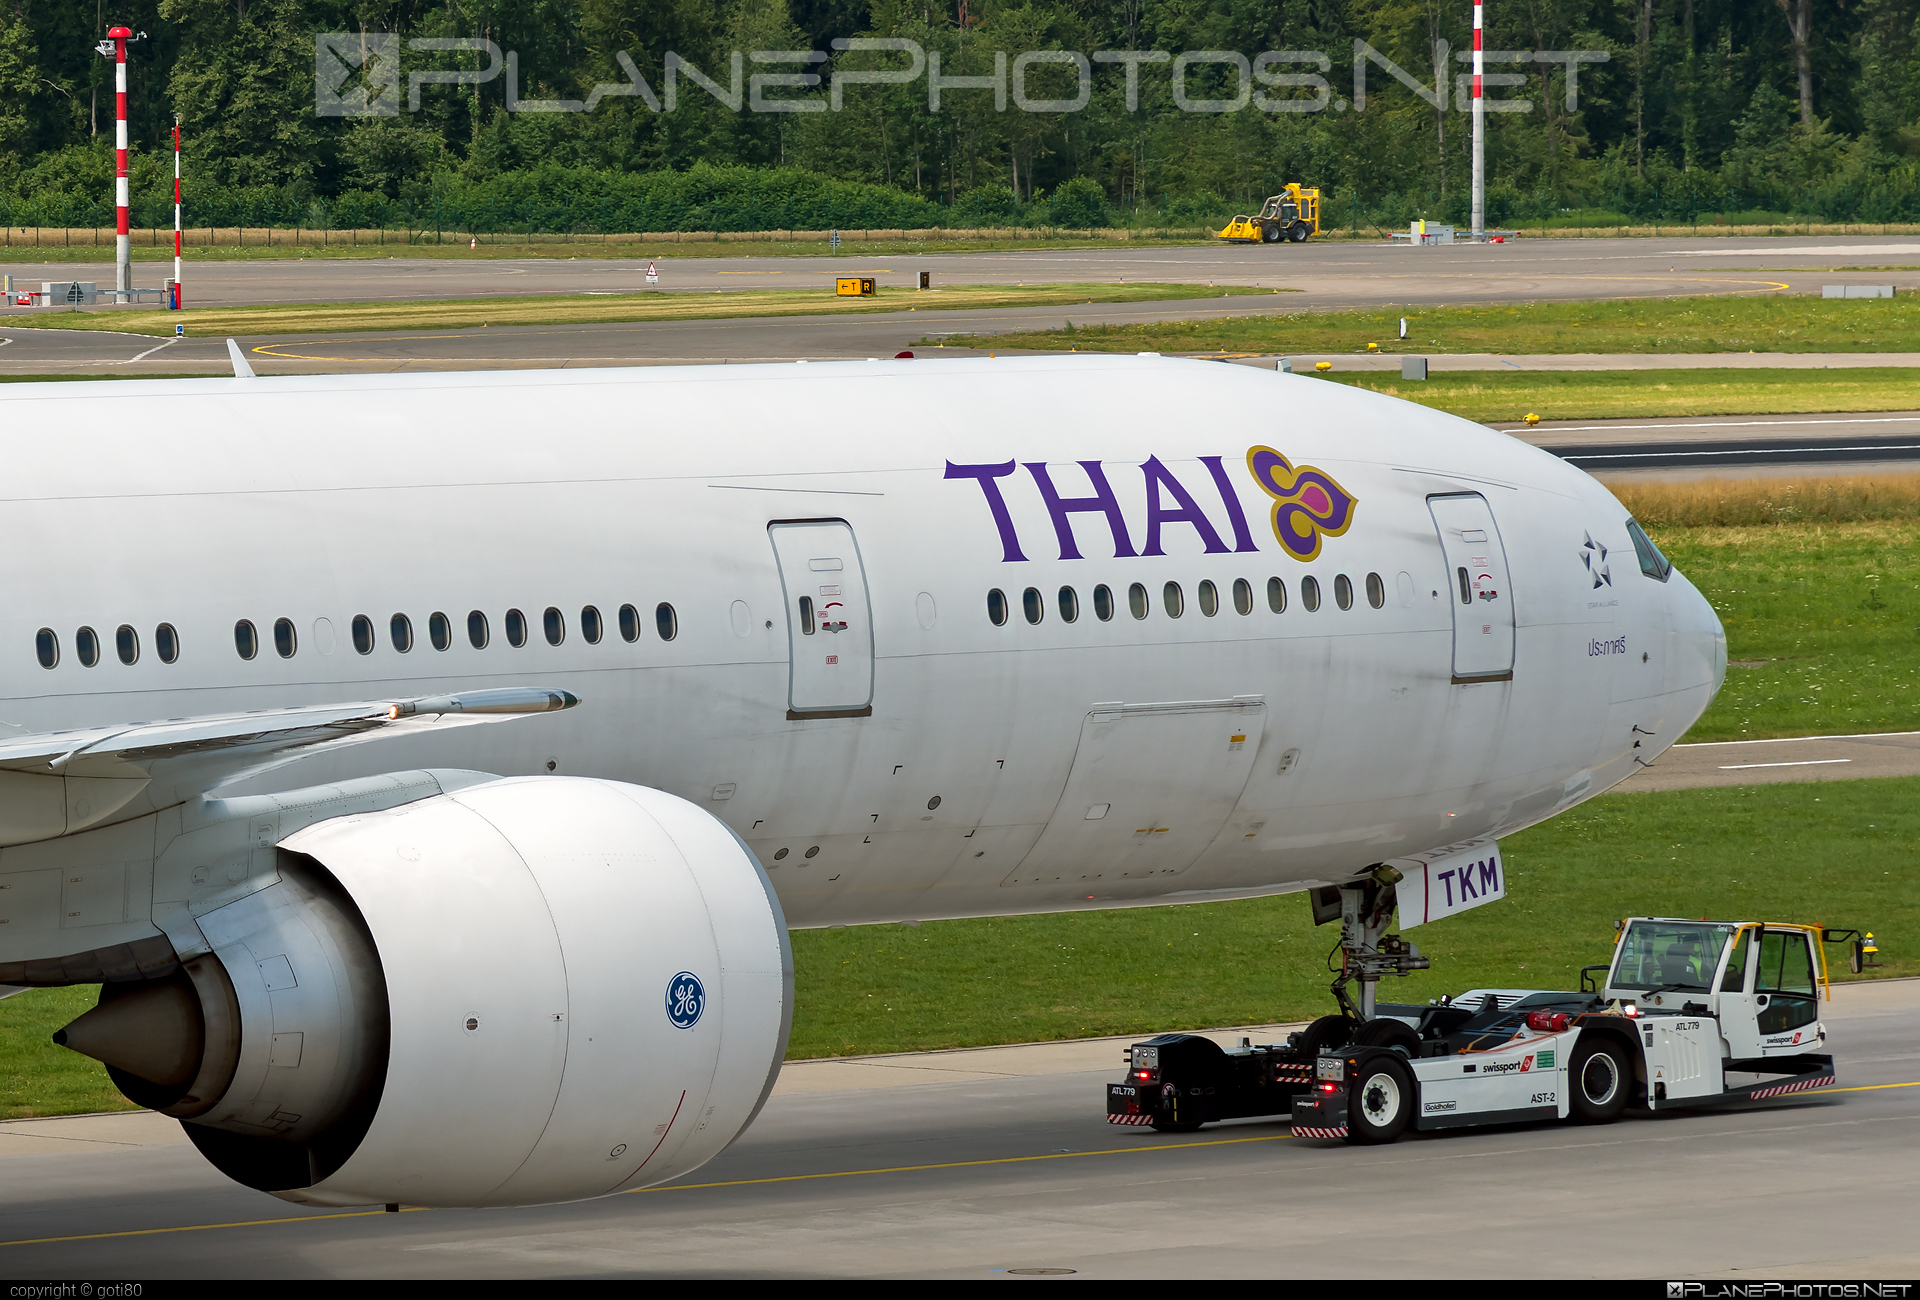 Boeing 777-300ER - HS-TKM operated by Thai Airways #b777 #b777er #boeing #boeing777 #thaiairways #tripleseven